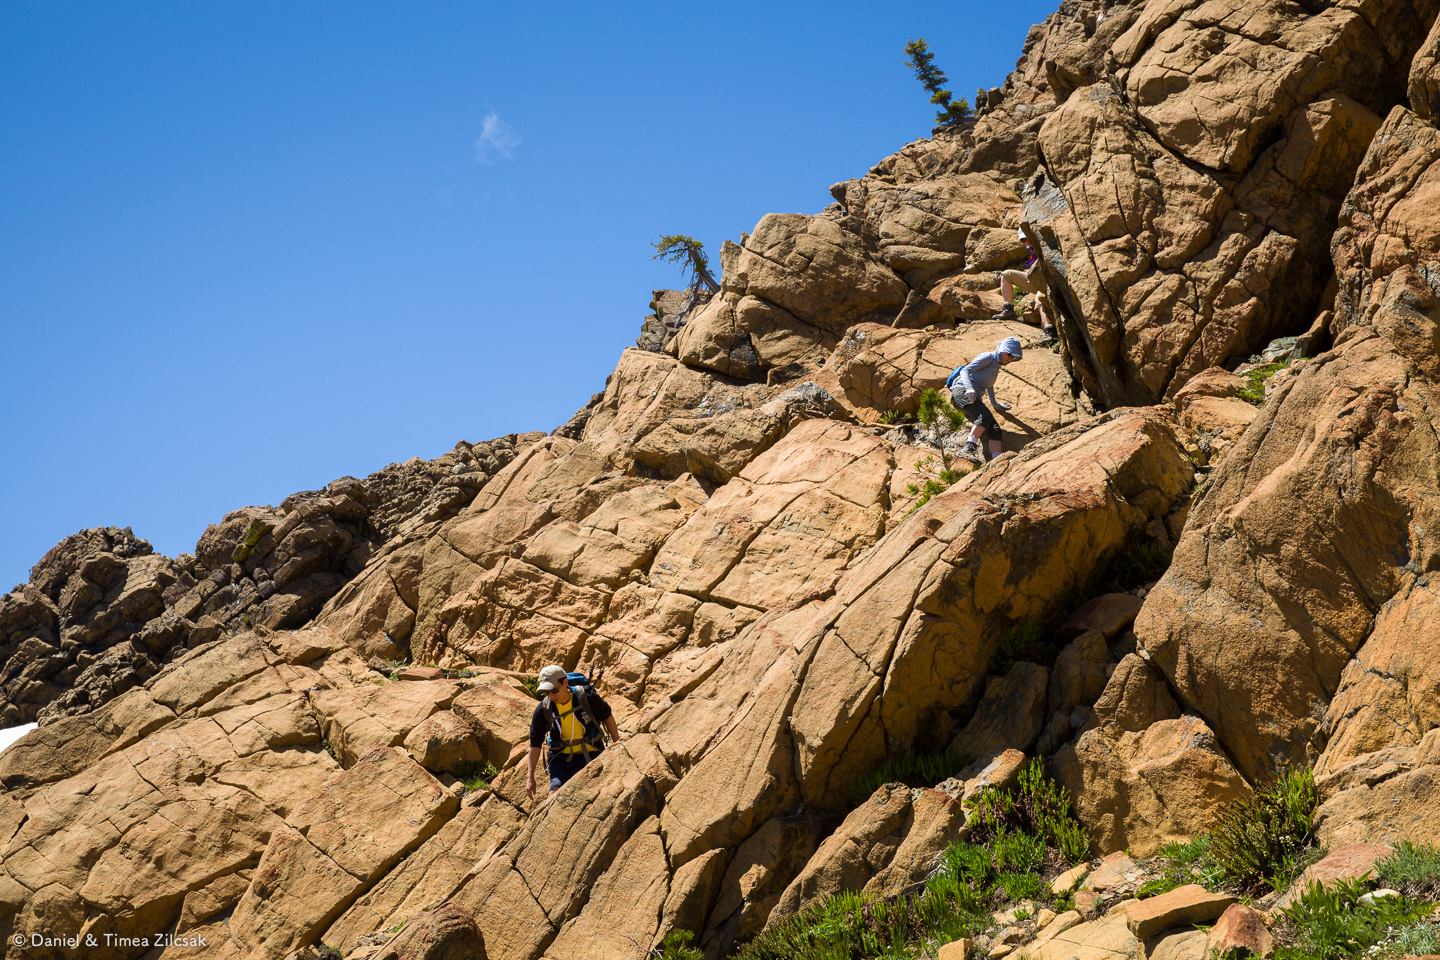 Scrambling down to our lunch spot